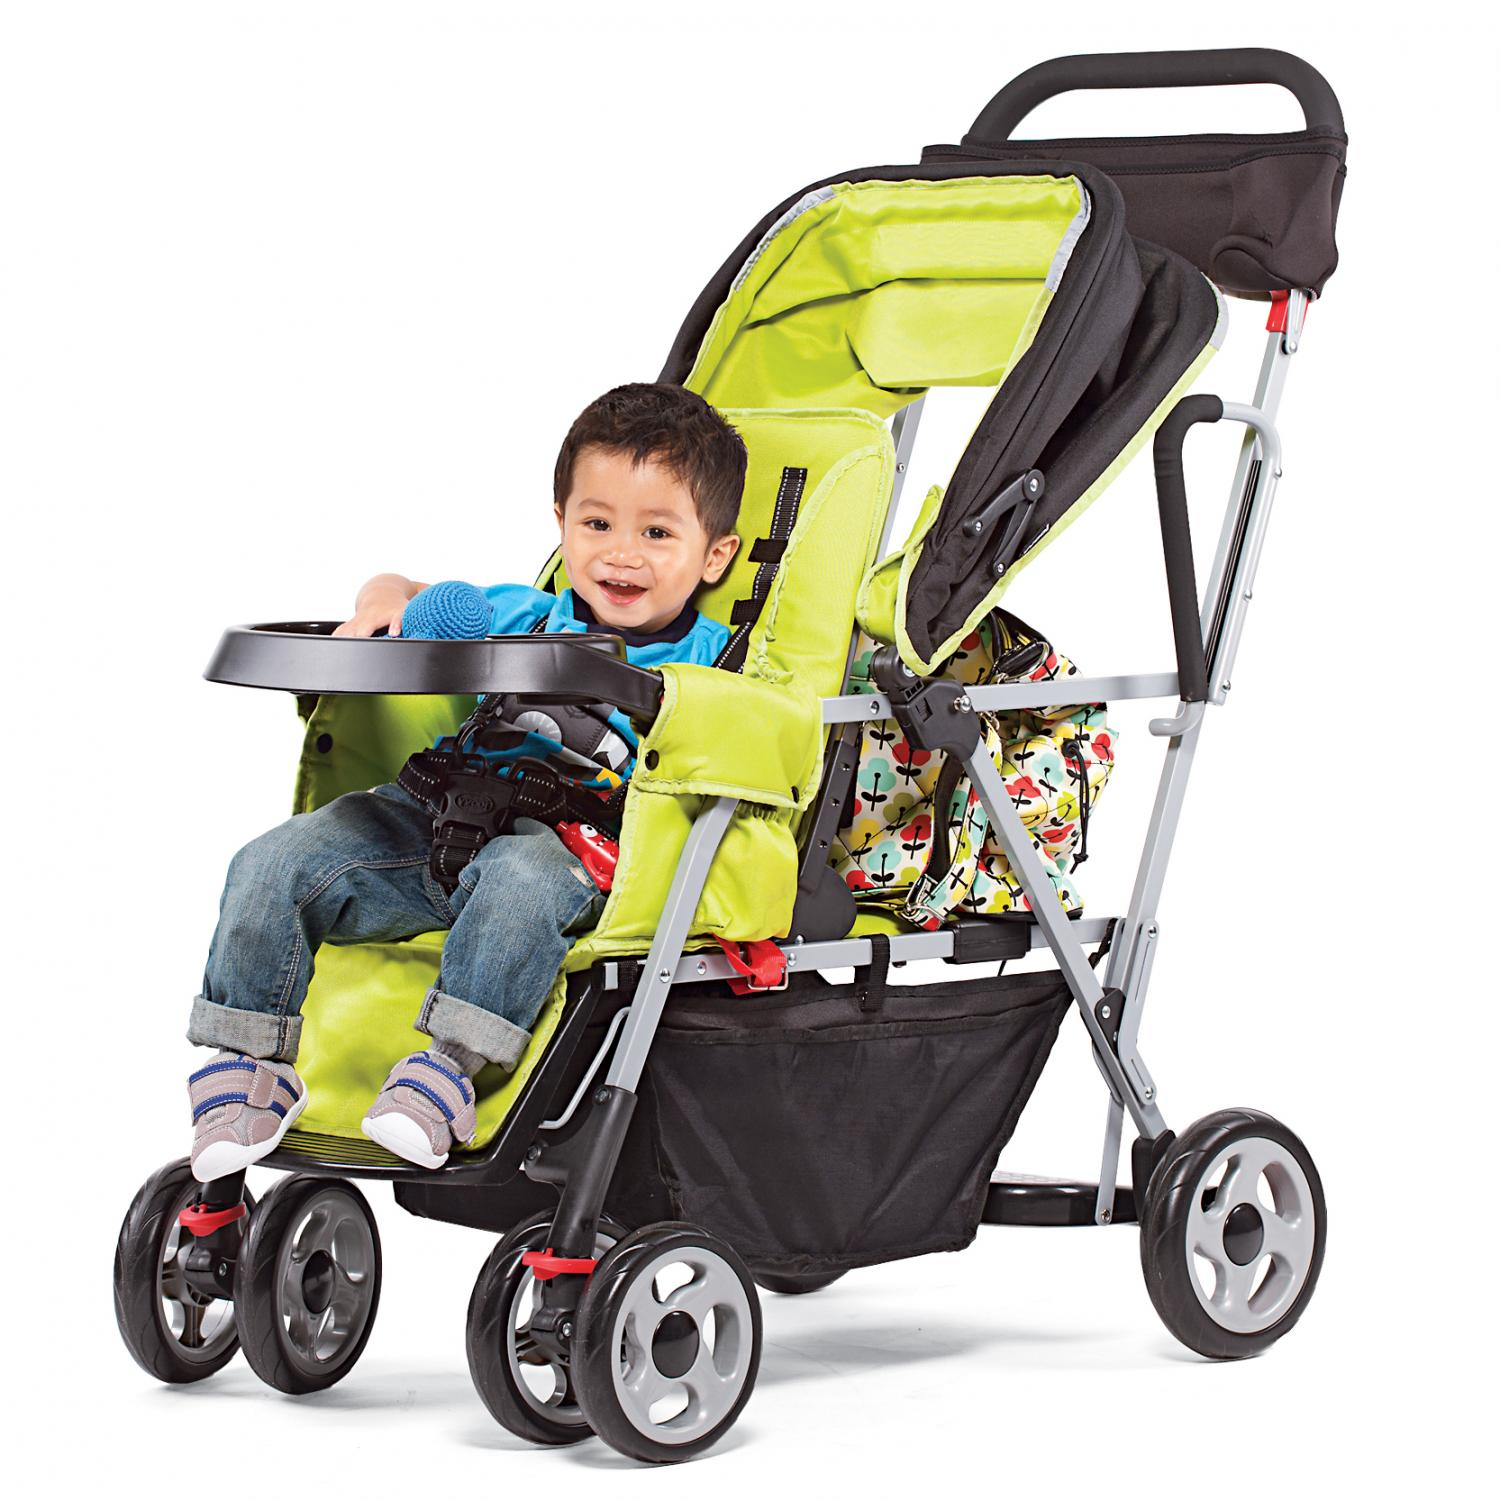 our favorite new single double and travel strollers  parenting - double strollers for growing families